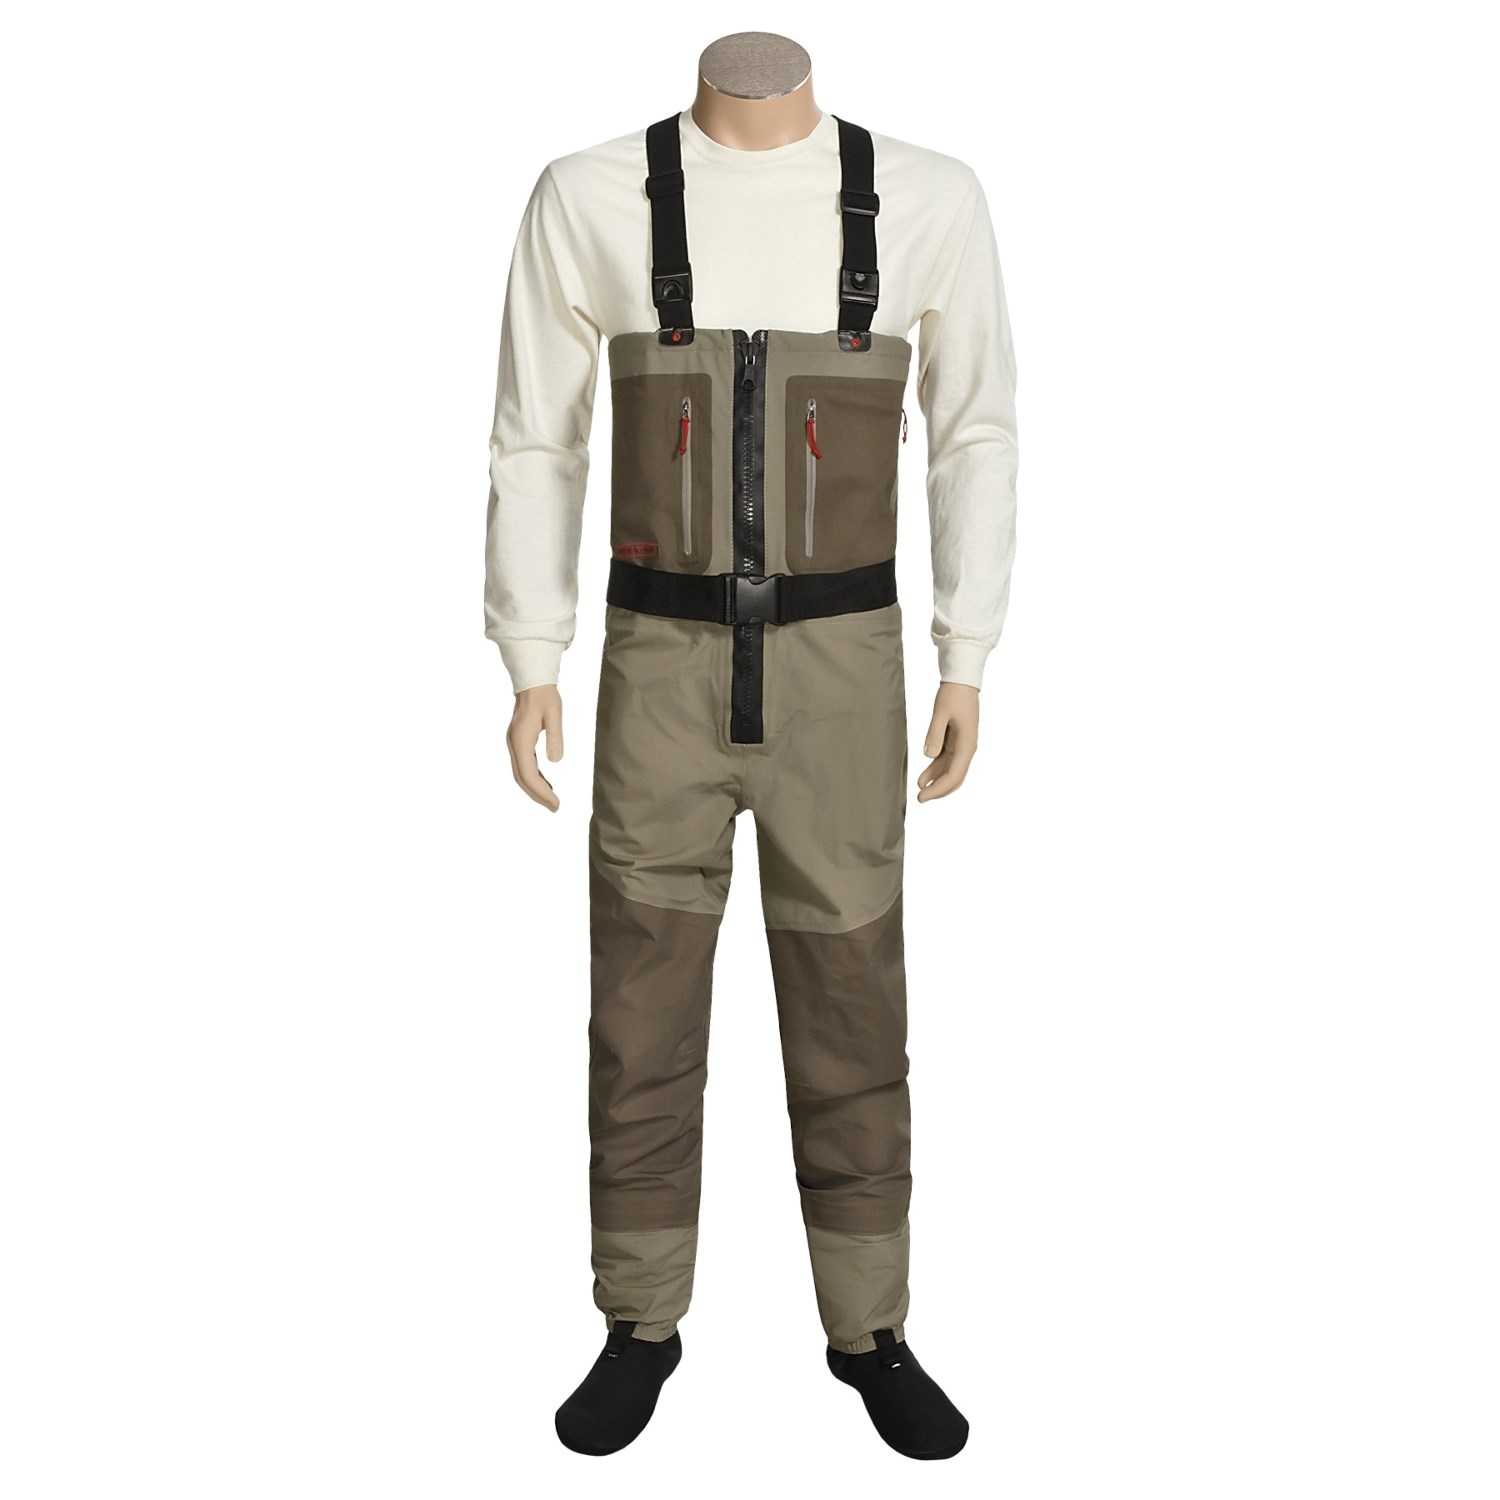 Redington cpx waders for men 3426g save 30 for Men s fishing waders